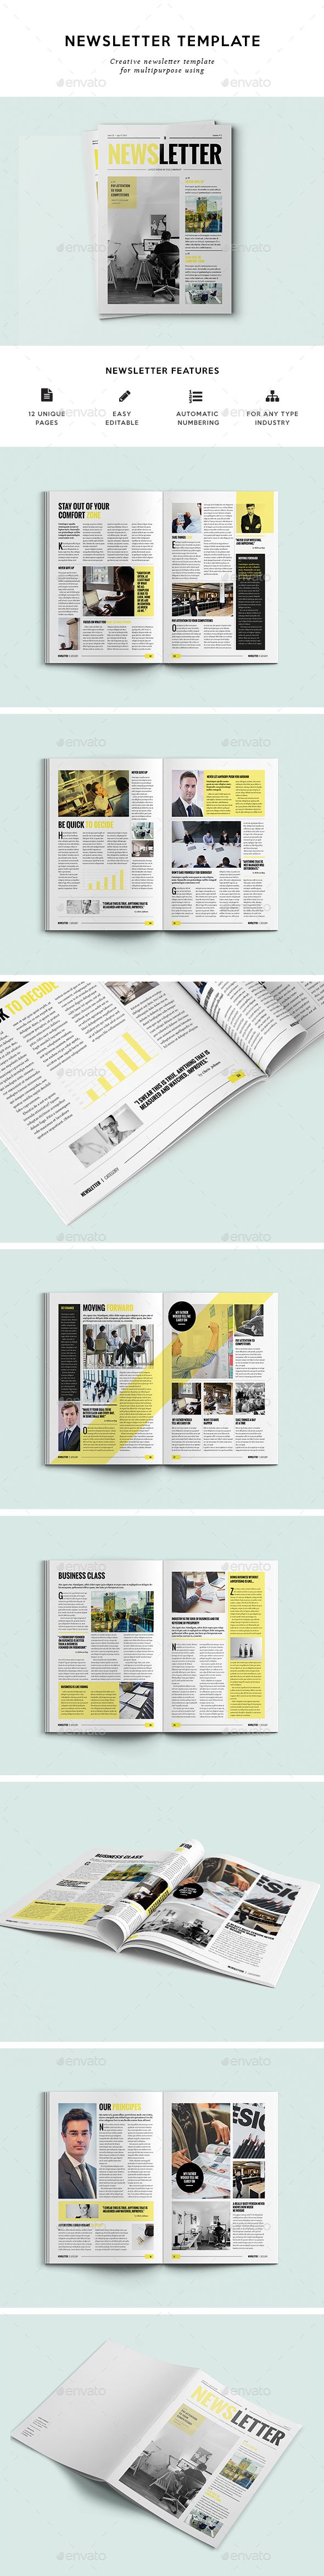 Fantastic 10 Half Hexagon Template Big 10 Minute Resume Solid 1099 Misc Form Template 1099 Template Word Youthful 1st Birthday Invite Templates Dark1st Job Resume Objective Philofaxy: Diary Inserts